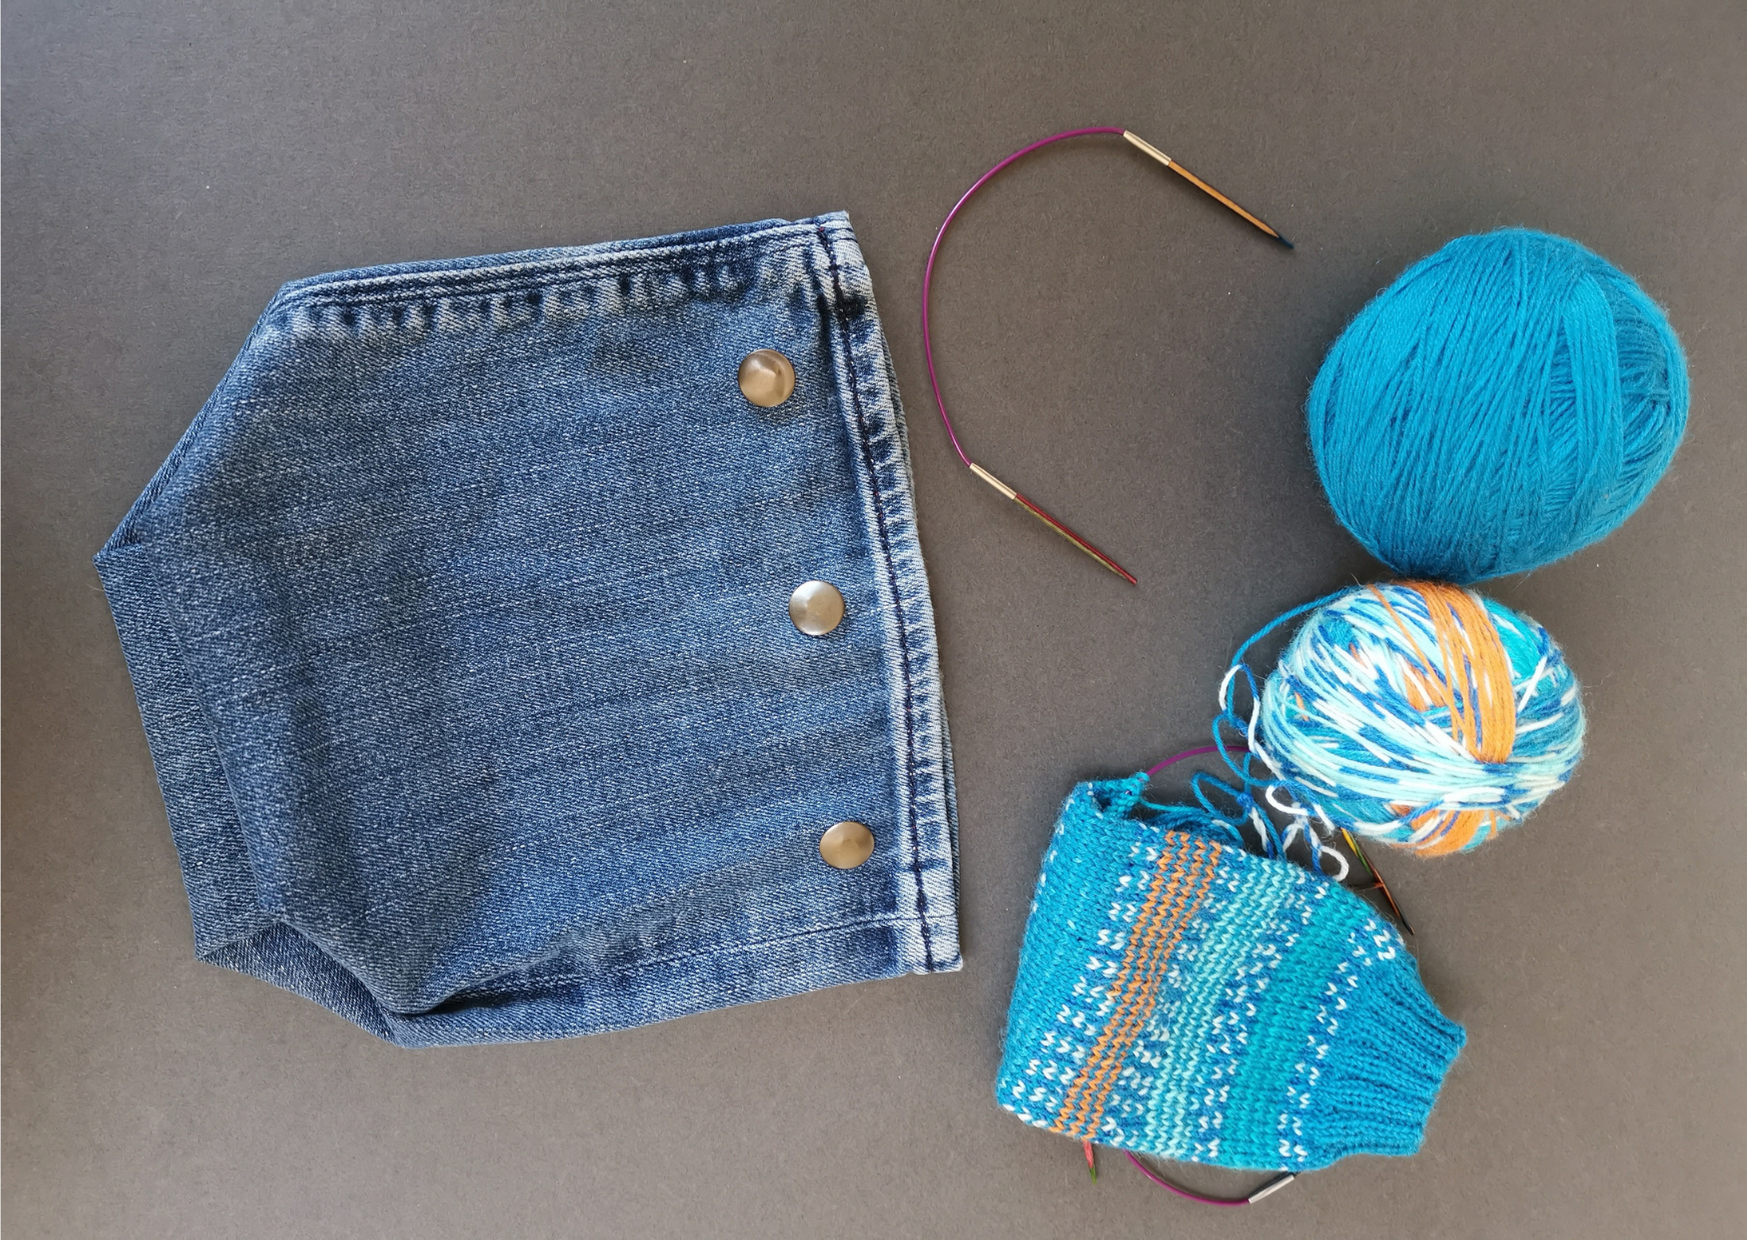 The same idea for the plant pot but with metal poppers added to make it into a project bag for sock knitting.  Turquoise and orange yarns, a small knitting needles and a partially made sock are to the right.